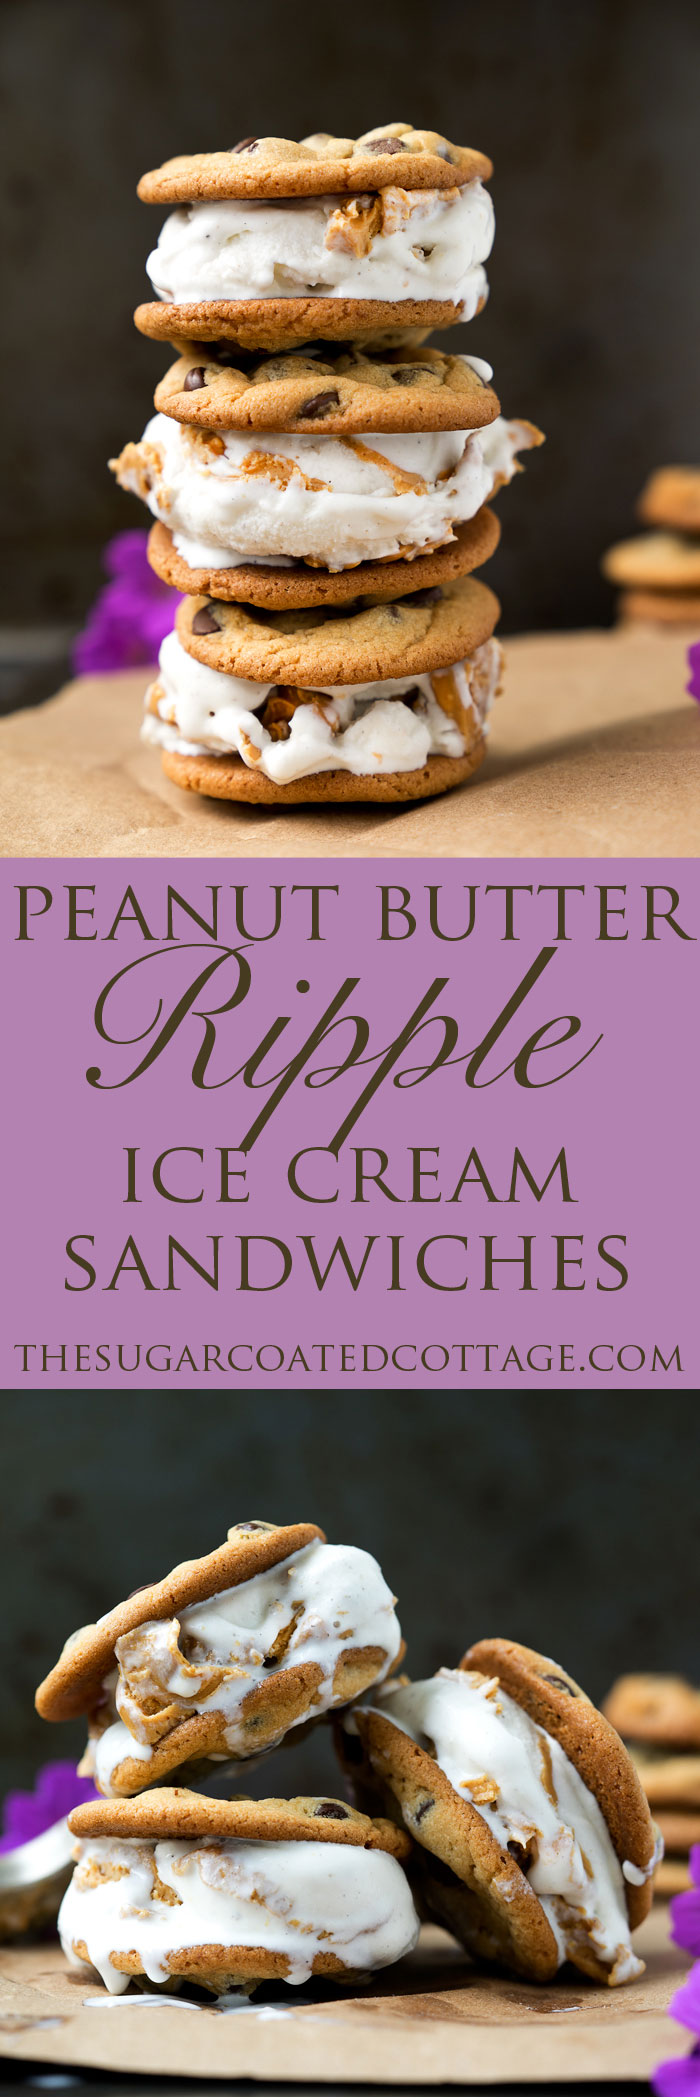 Peanut-Butter-Ripple-Chocolate-Chip-Cookie-Ice-Cream-Sandwiches